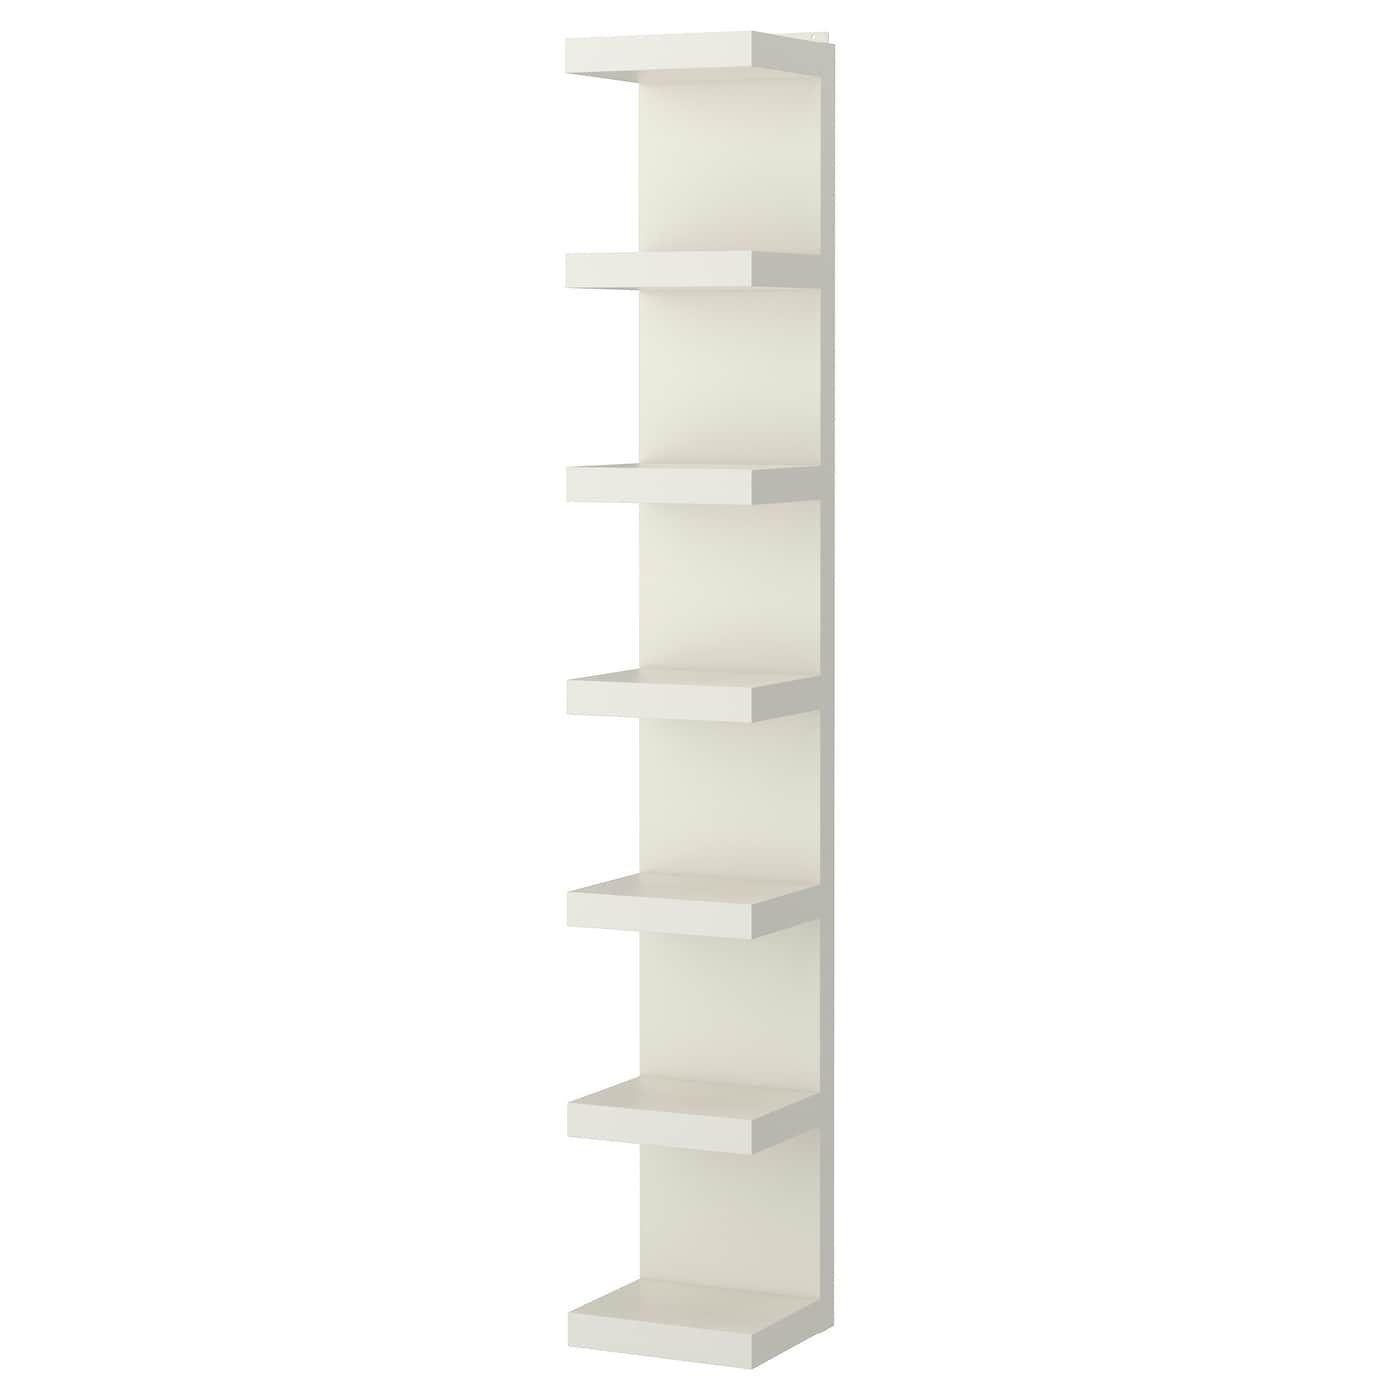 Lack Wall Shelf Unit White Ikea